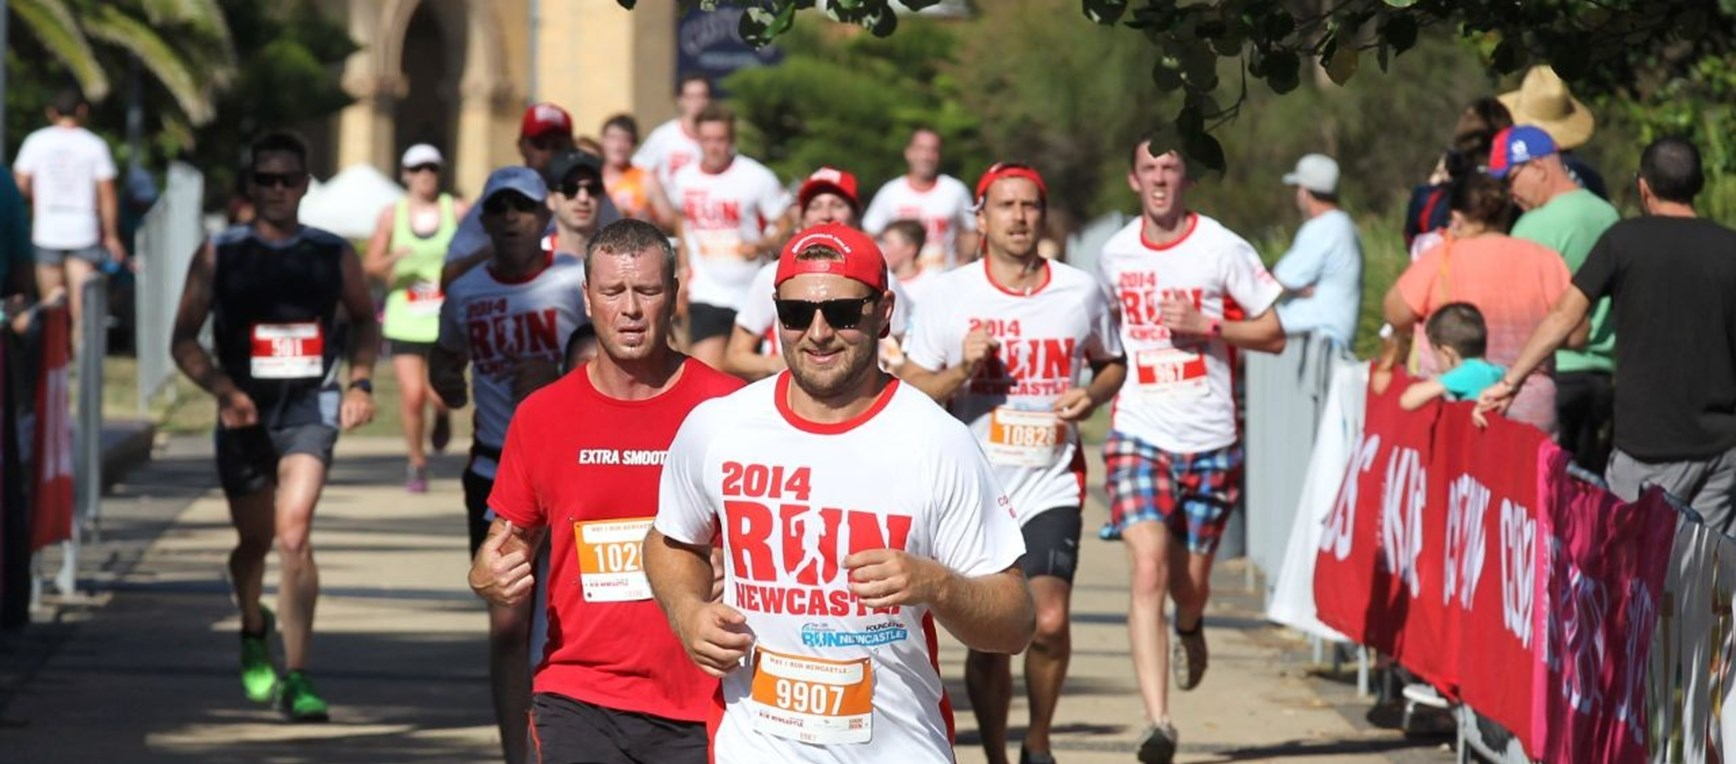 Gallery | Run Newcastle